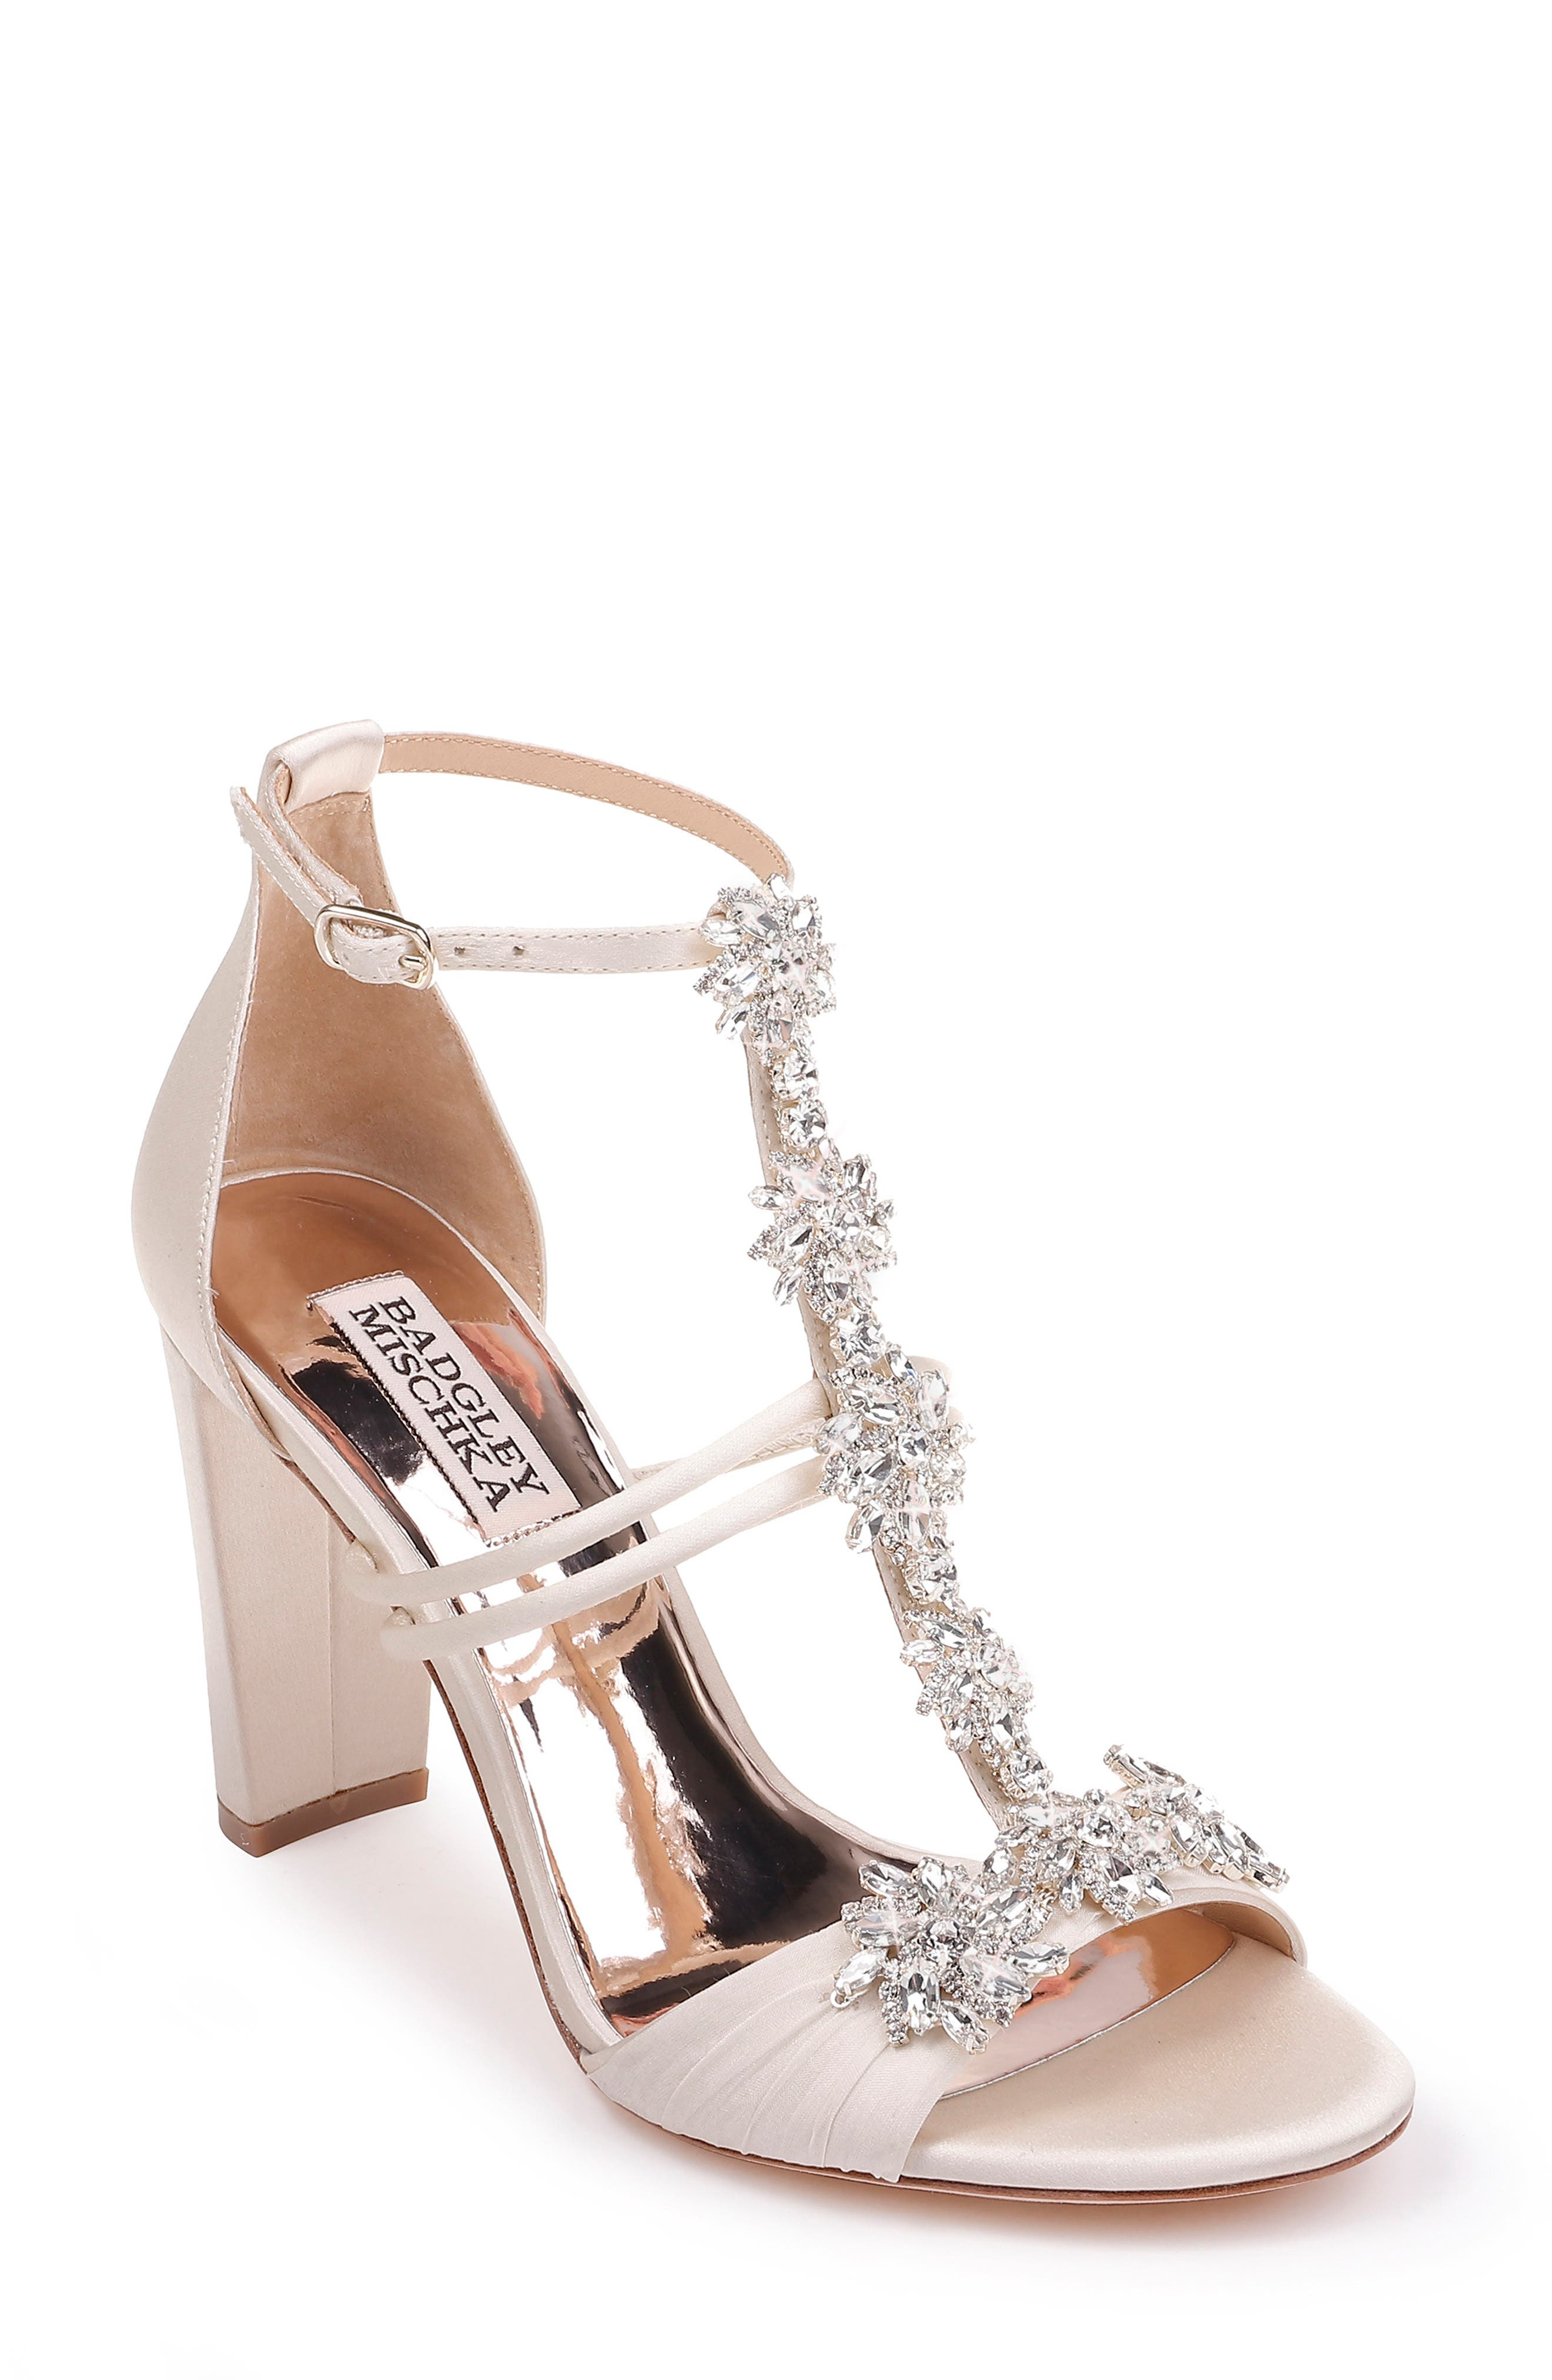 Badgley Mischka Laney Sandal, Ivory